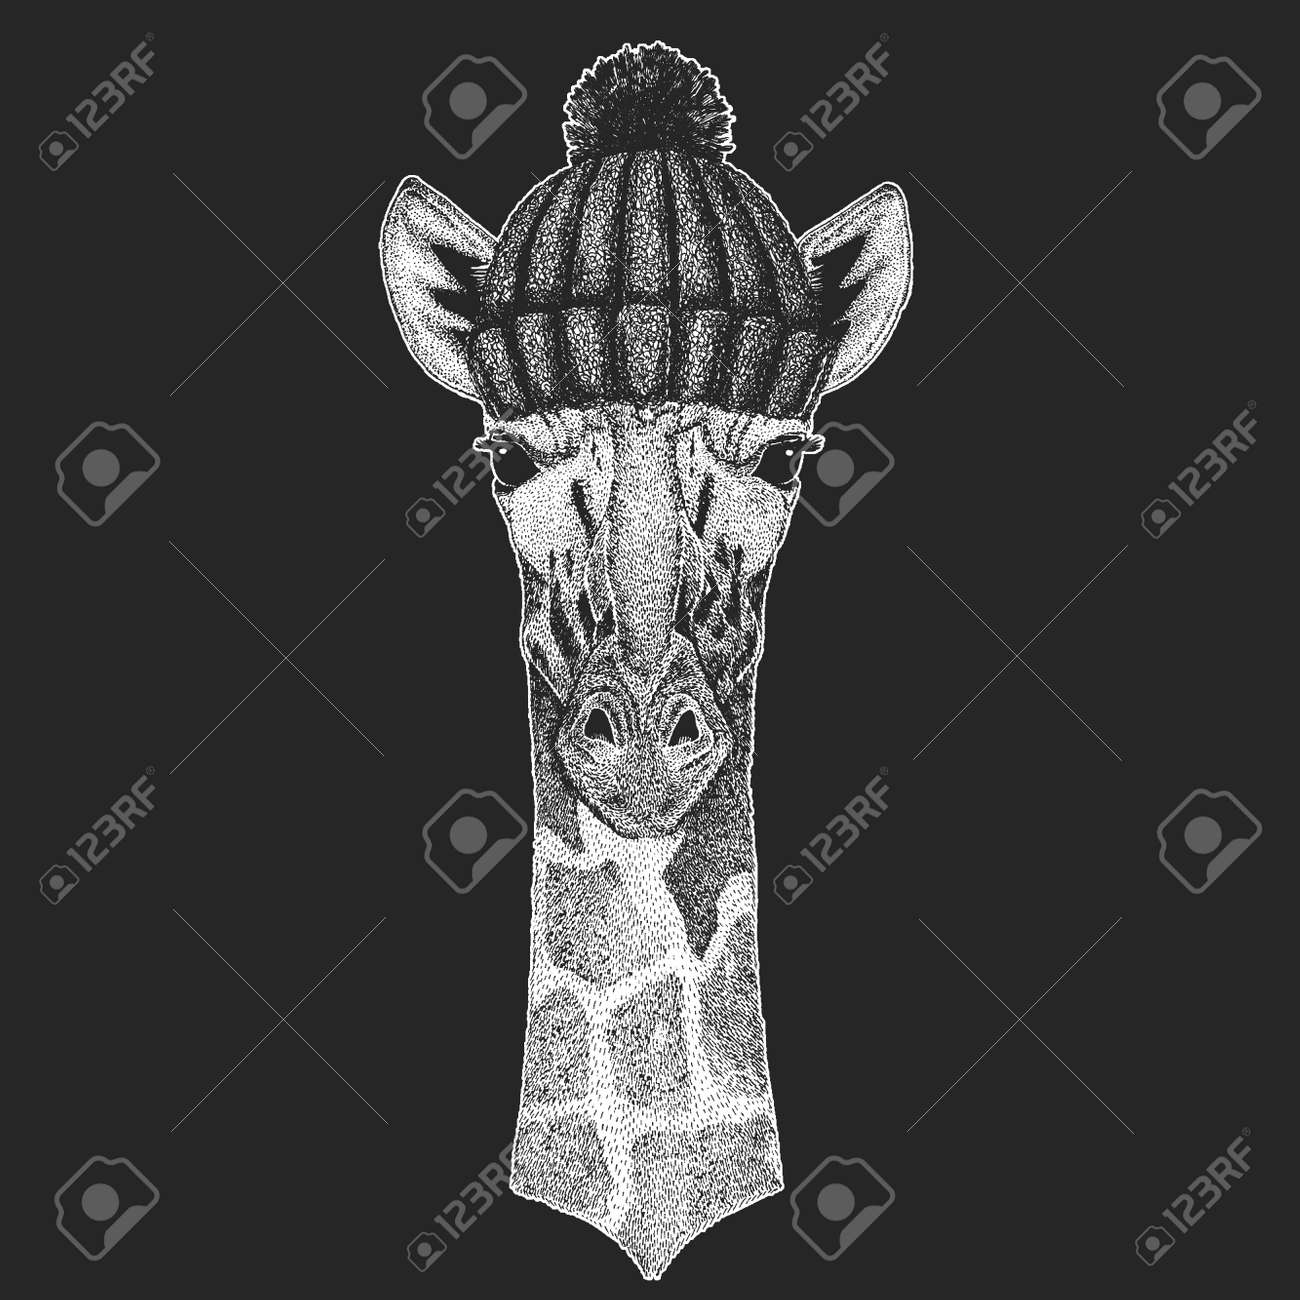 Cute Animal Wearing Knitted Winter Hat Camelopard Giraffe Hand